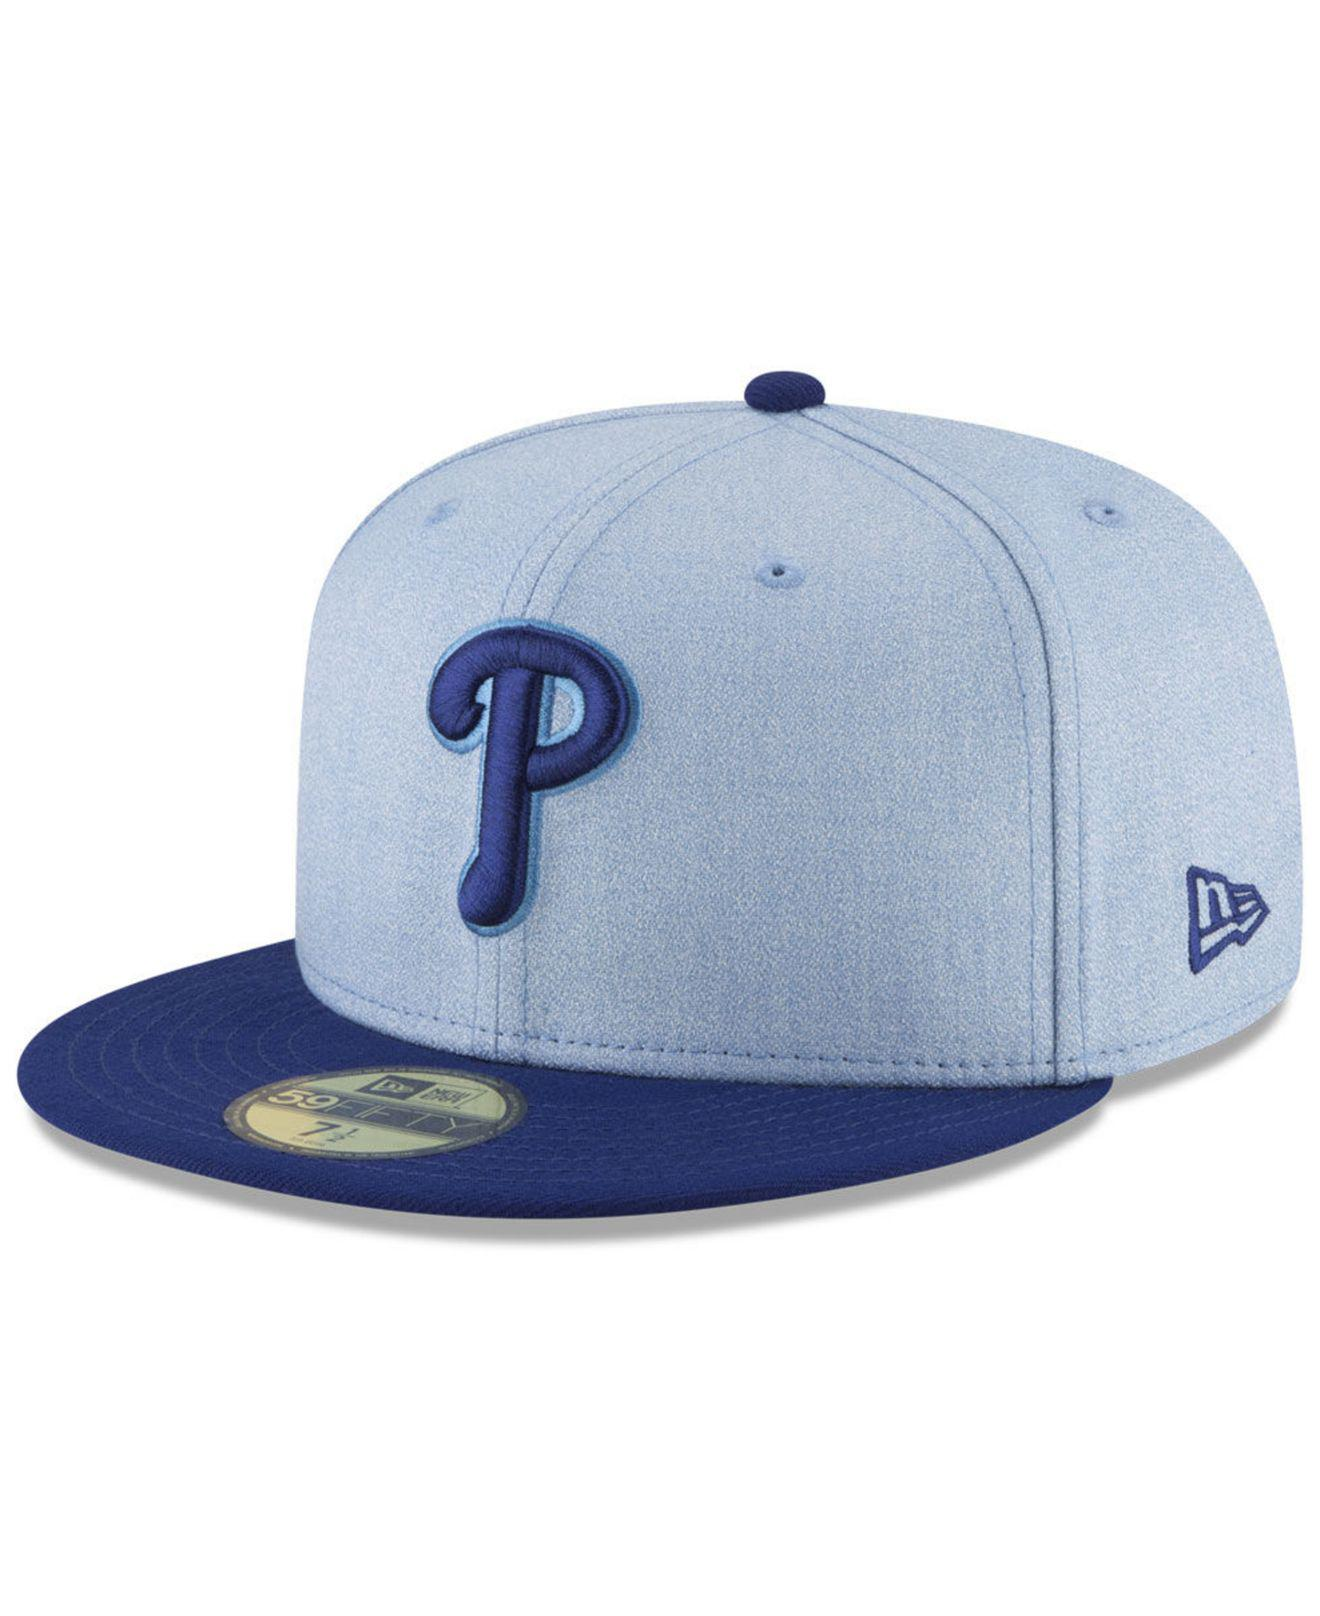 info for c6463 07daa KTZ Philadelphia Phillies Father s Day 59fifty Fitted Cap 2018 in ...